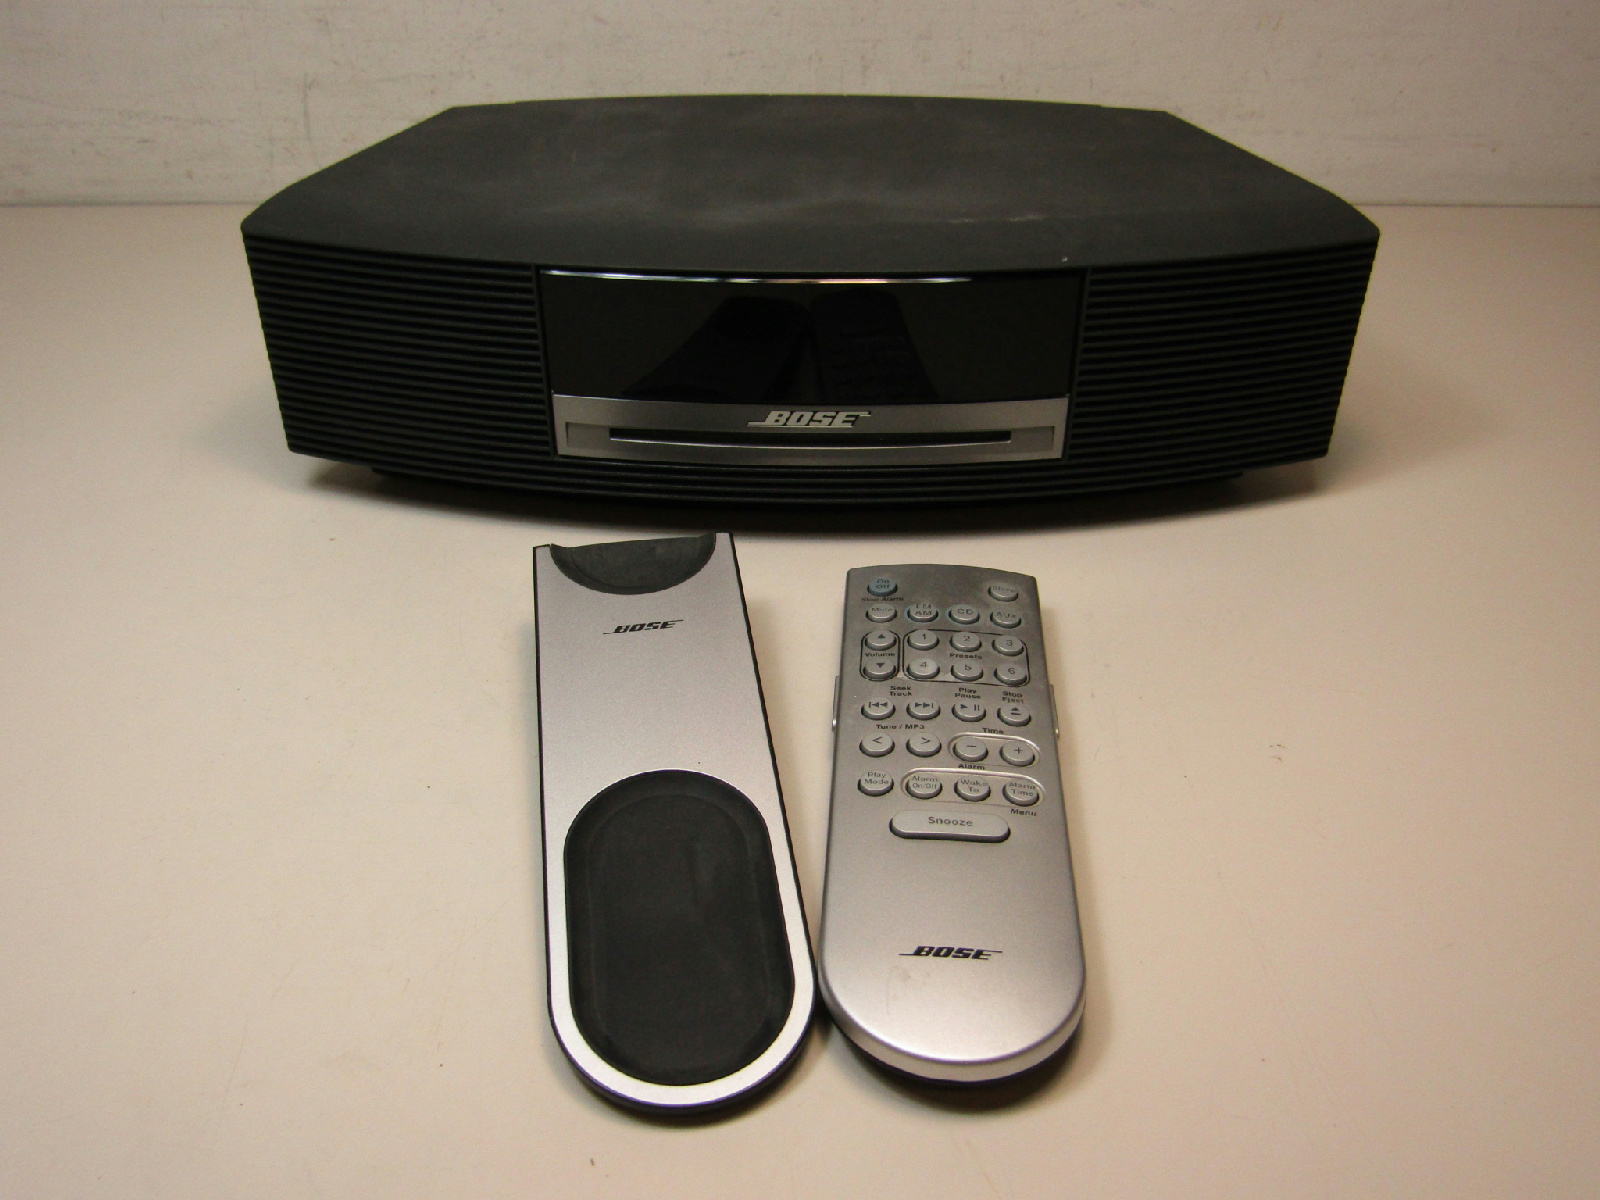 bose wave music system awrcc1 black tested works w remote. Black Bedroom Furniture Sets. Home Design Ideas